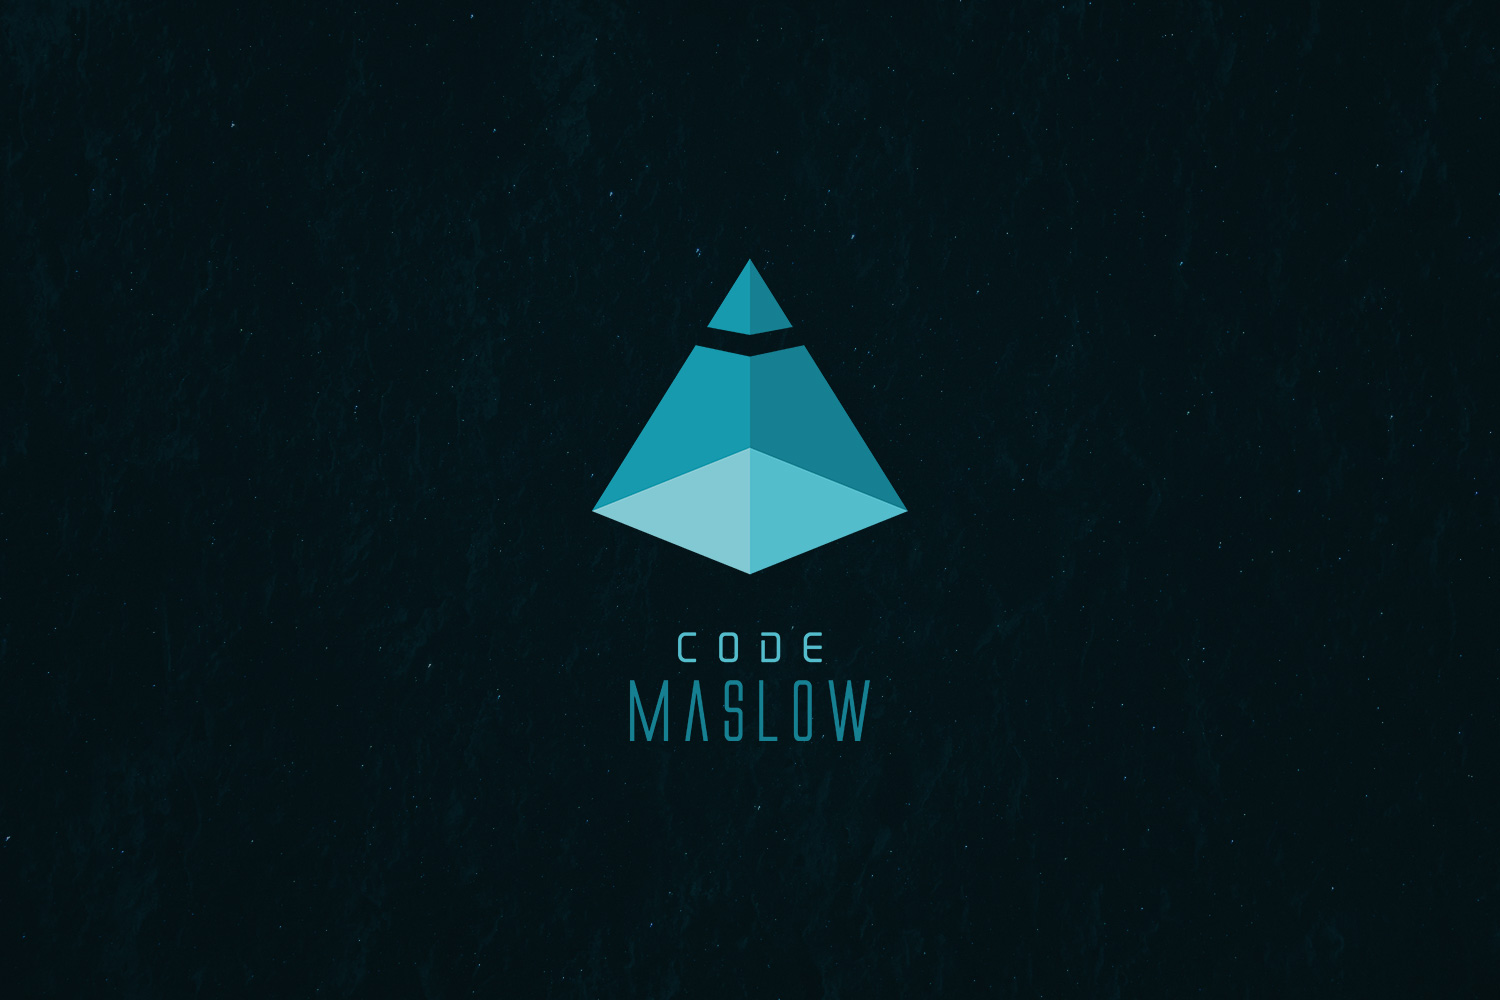 CODEMaslow developer logotype branding coding dev pyramid